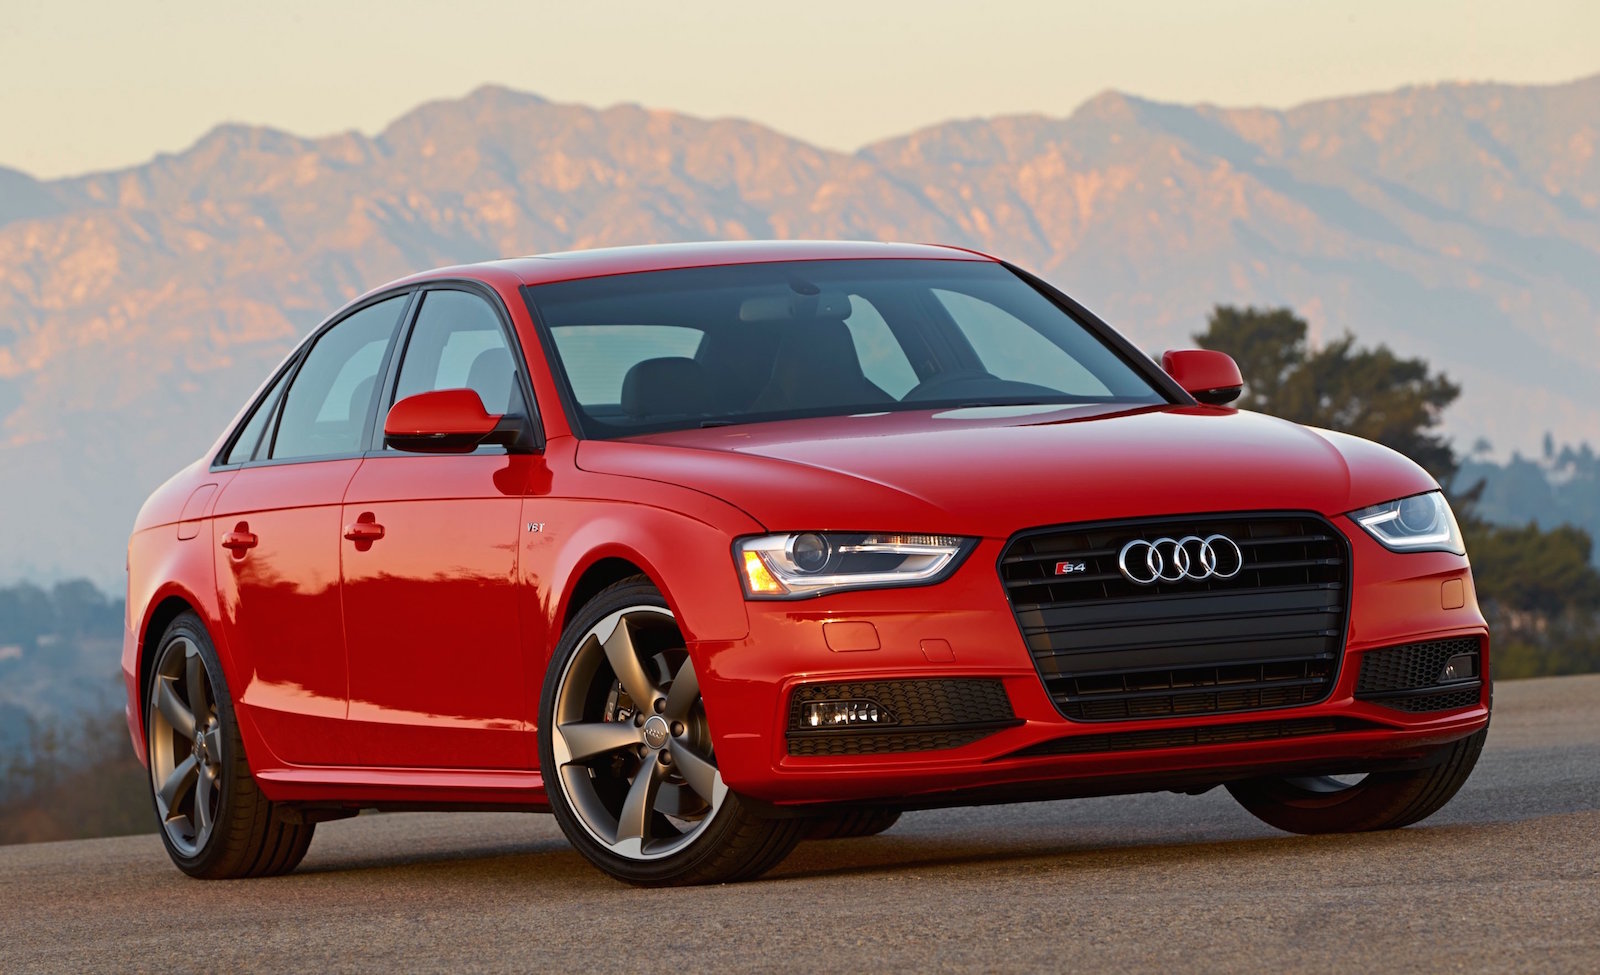 Sell My Audi S4 Online